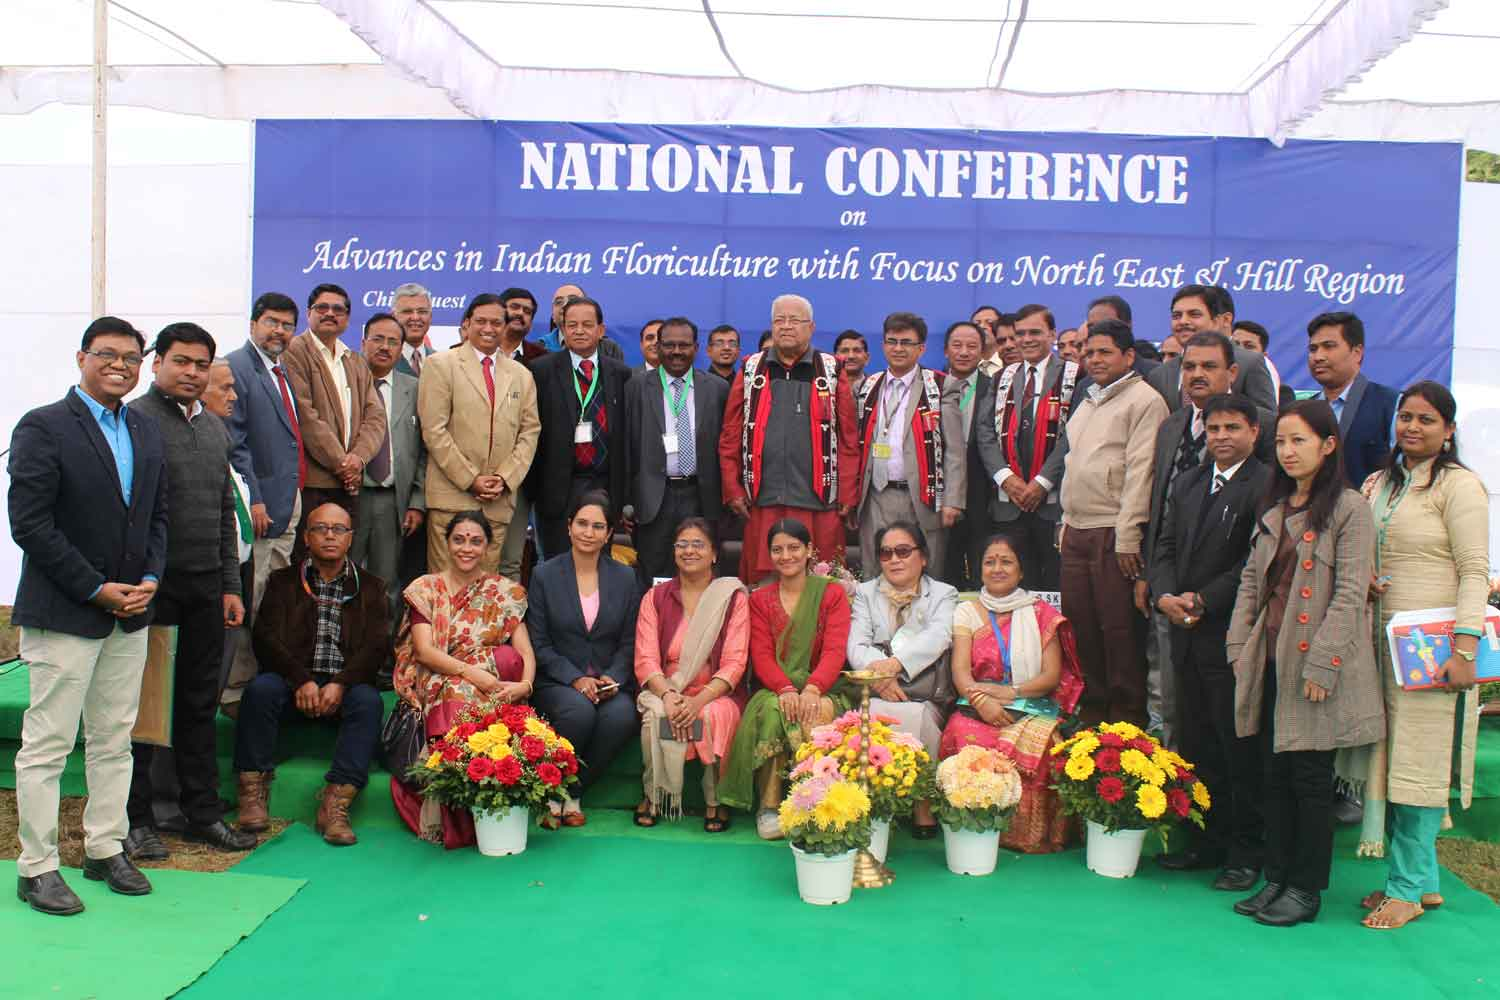 National Conference on advances in horticulture